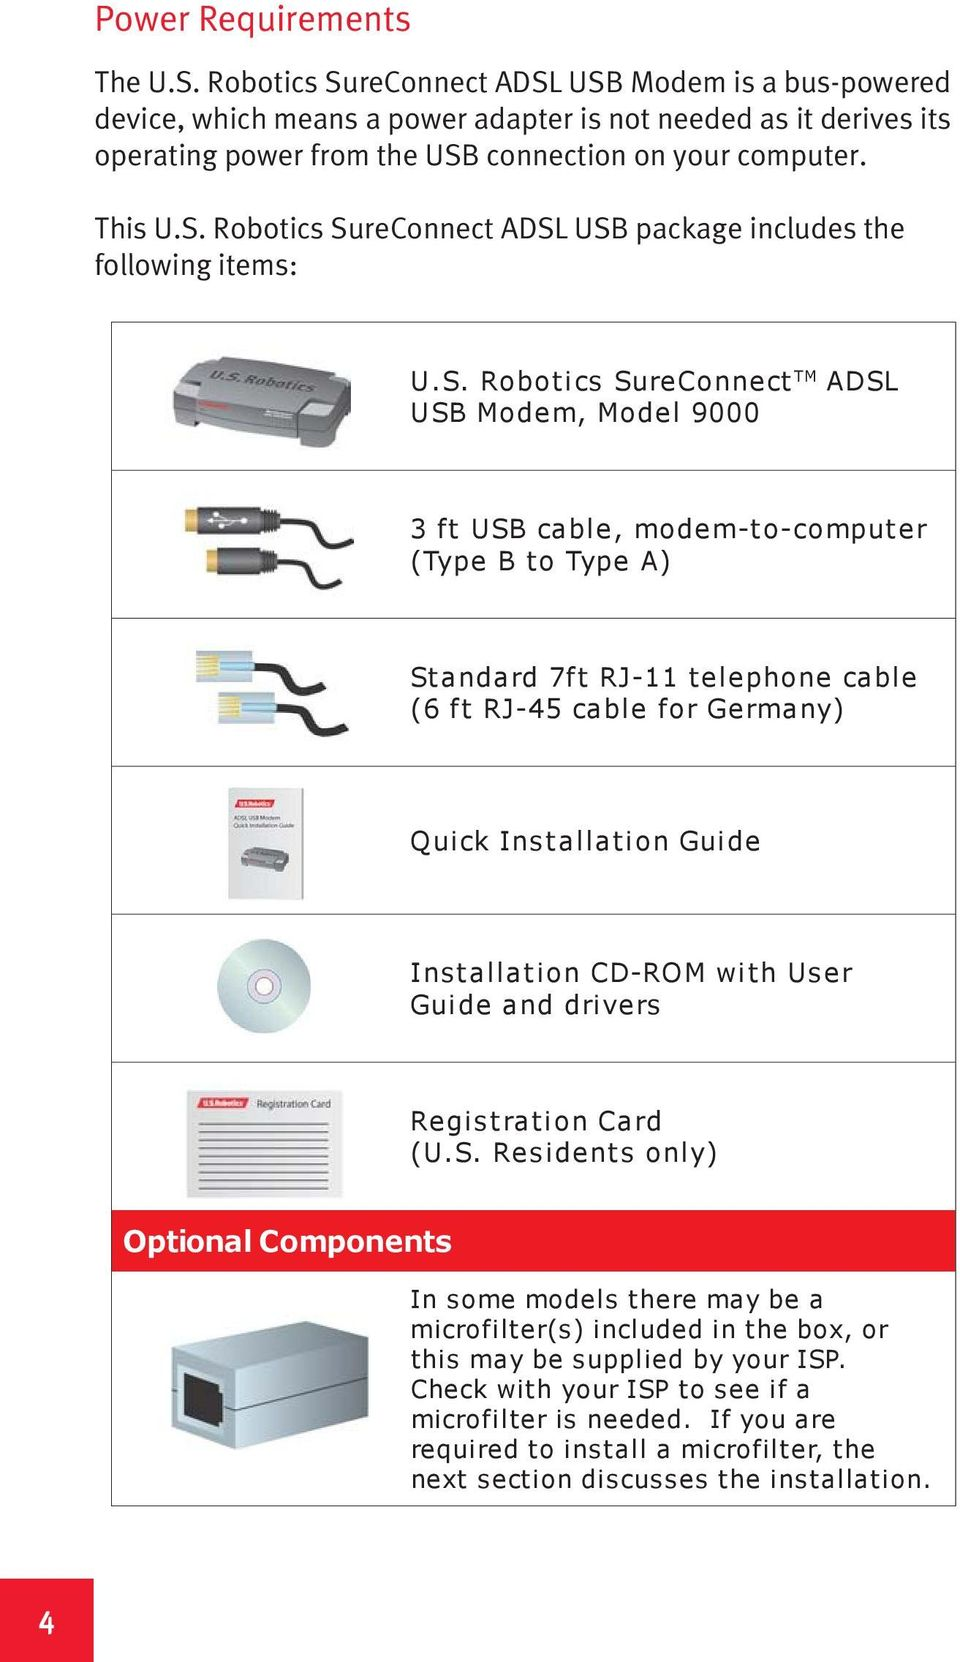 S. Robotics SureConnect USB Modem, Model 9000 TM ADSL 3 ft USB cable, modem-to-computer (Type B to Type A) Standard 7ft RJ-11 telephone cable (6 ft RJ-45 cable for Germany) Quick Installation Guide